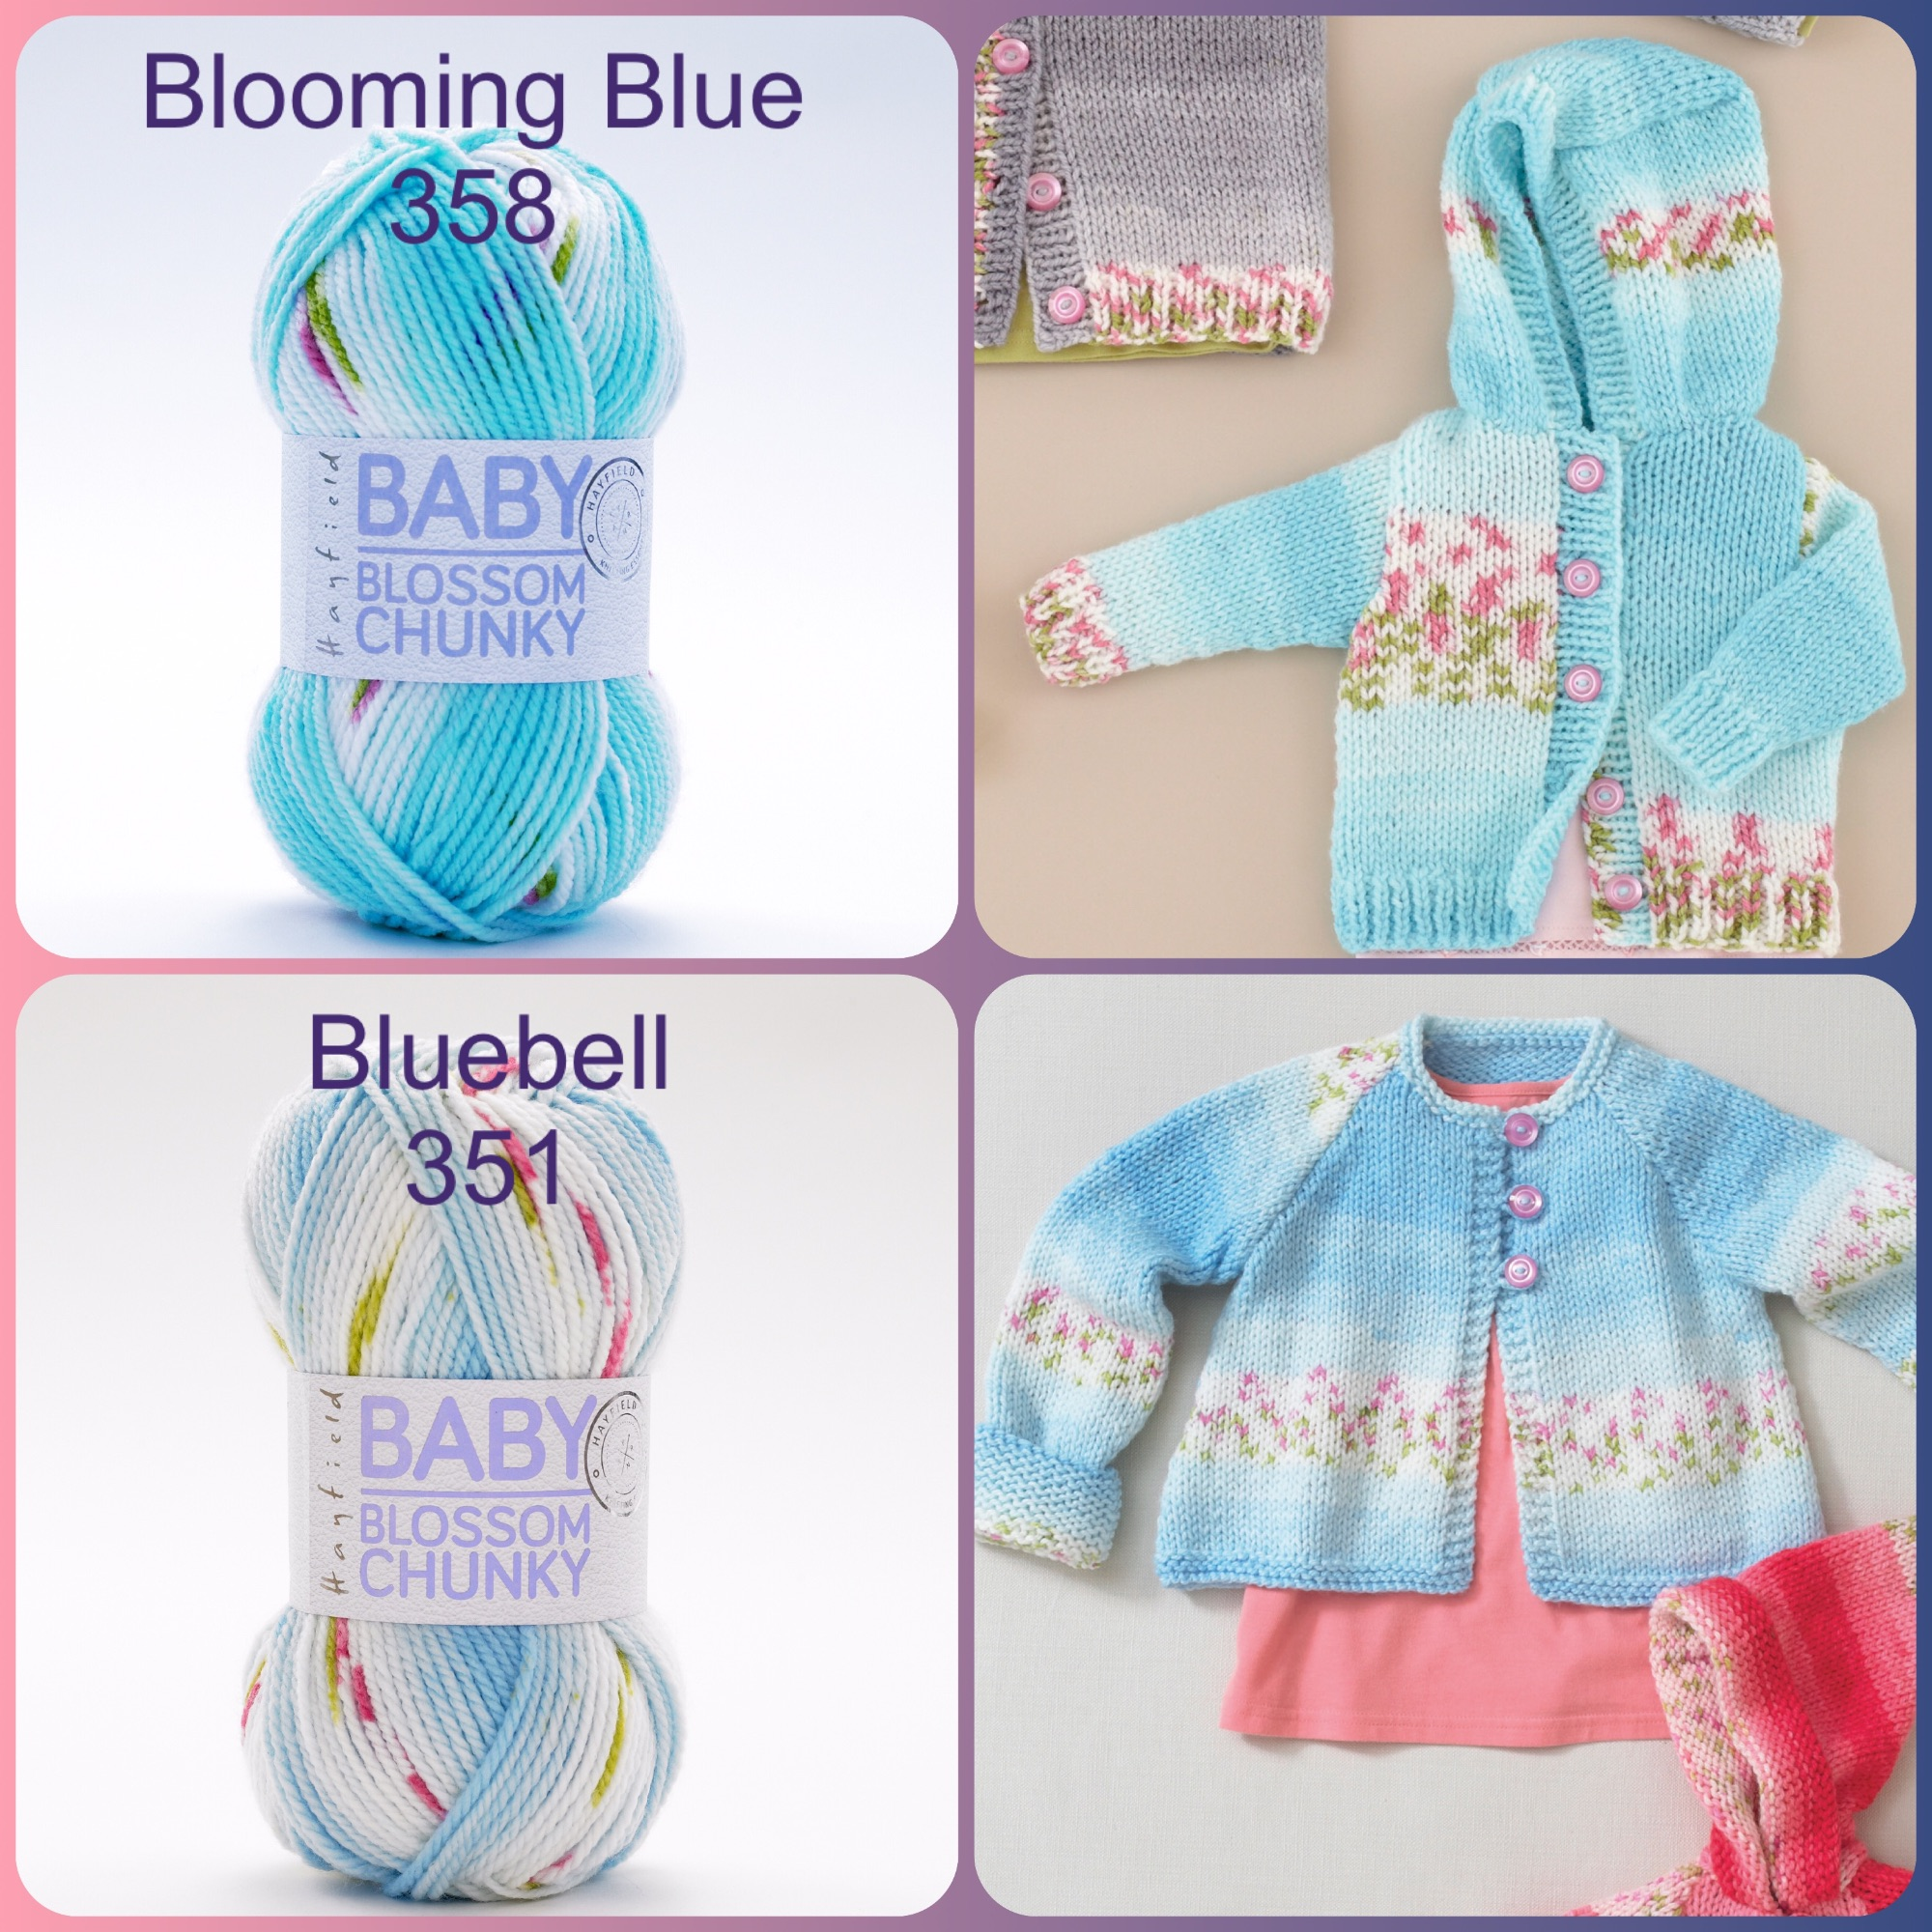 Hayfield baby blossom chunky yarn blooming blue bluebell colours and knitti